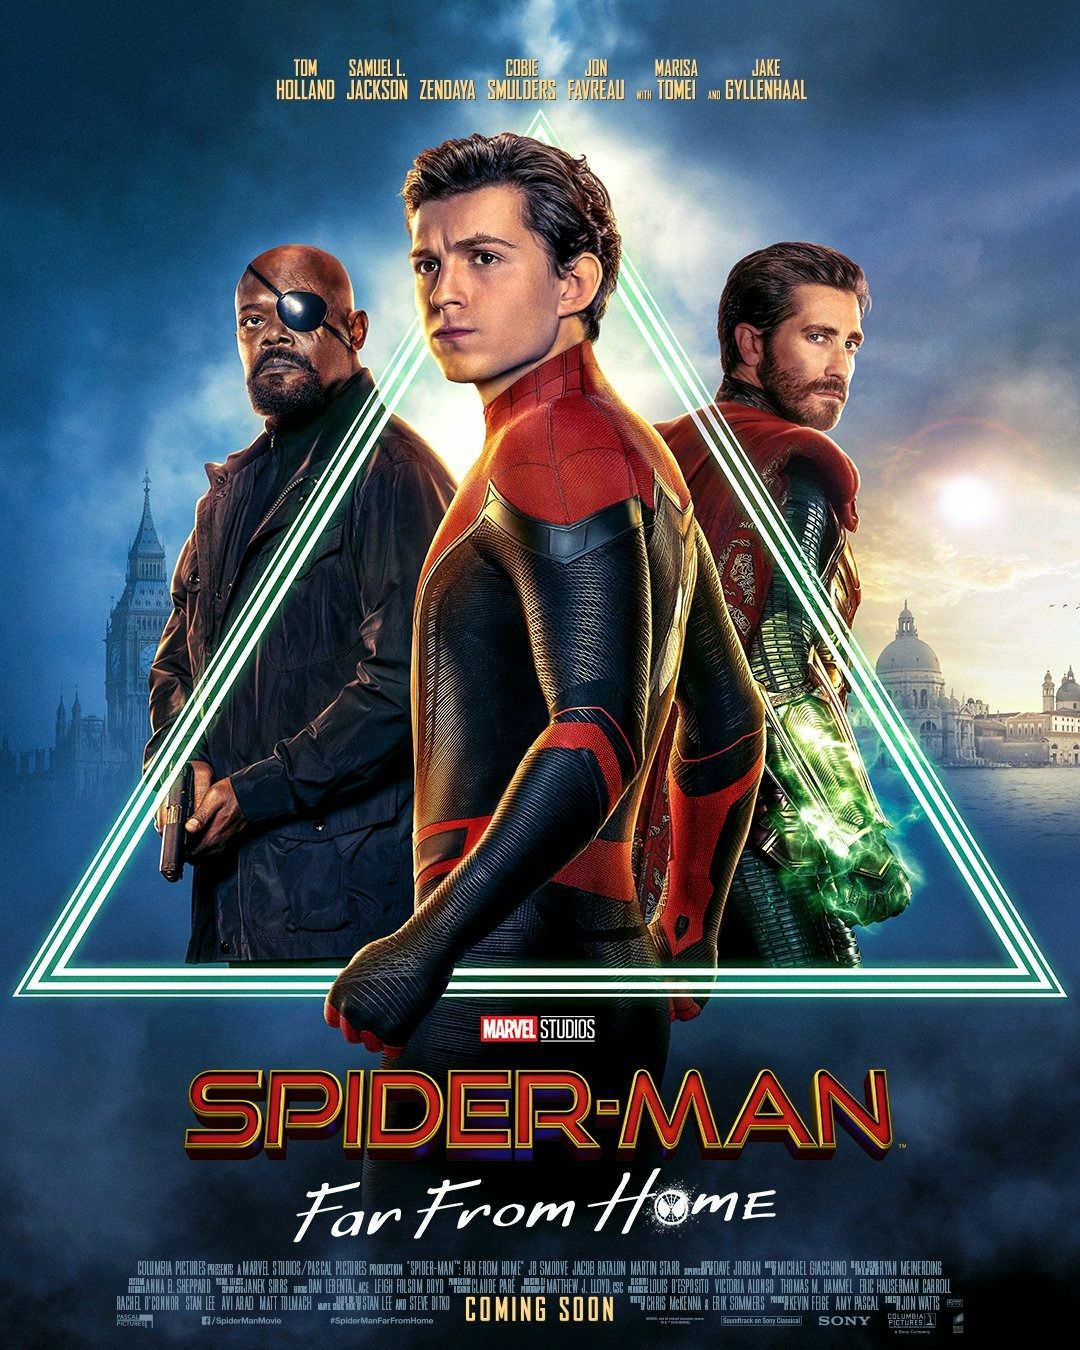 Kuvahaun tulos haulle Spider-Man: Far From Home poster